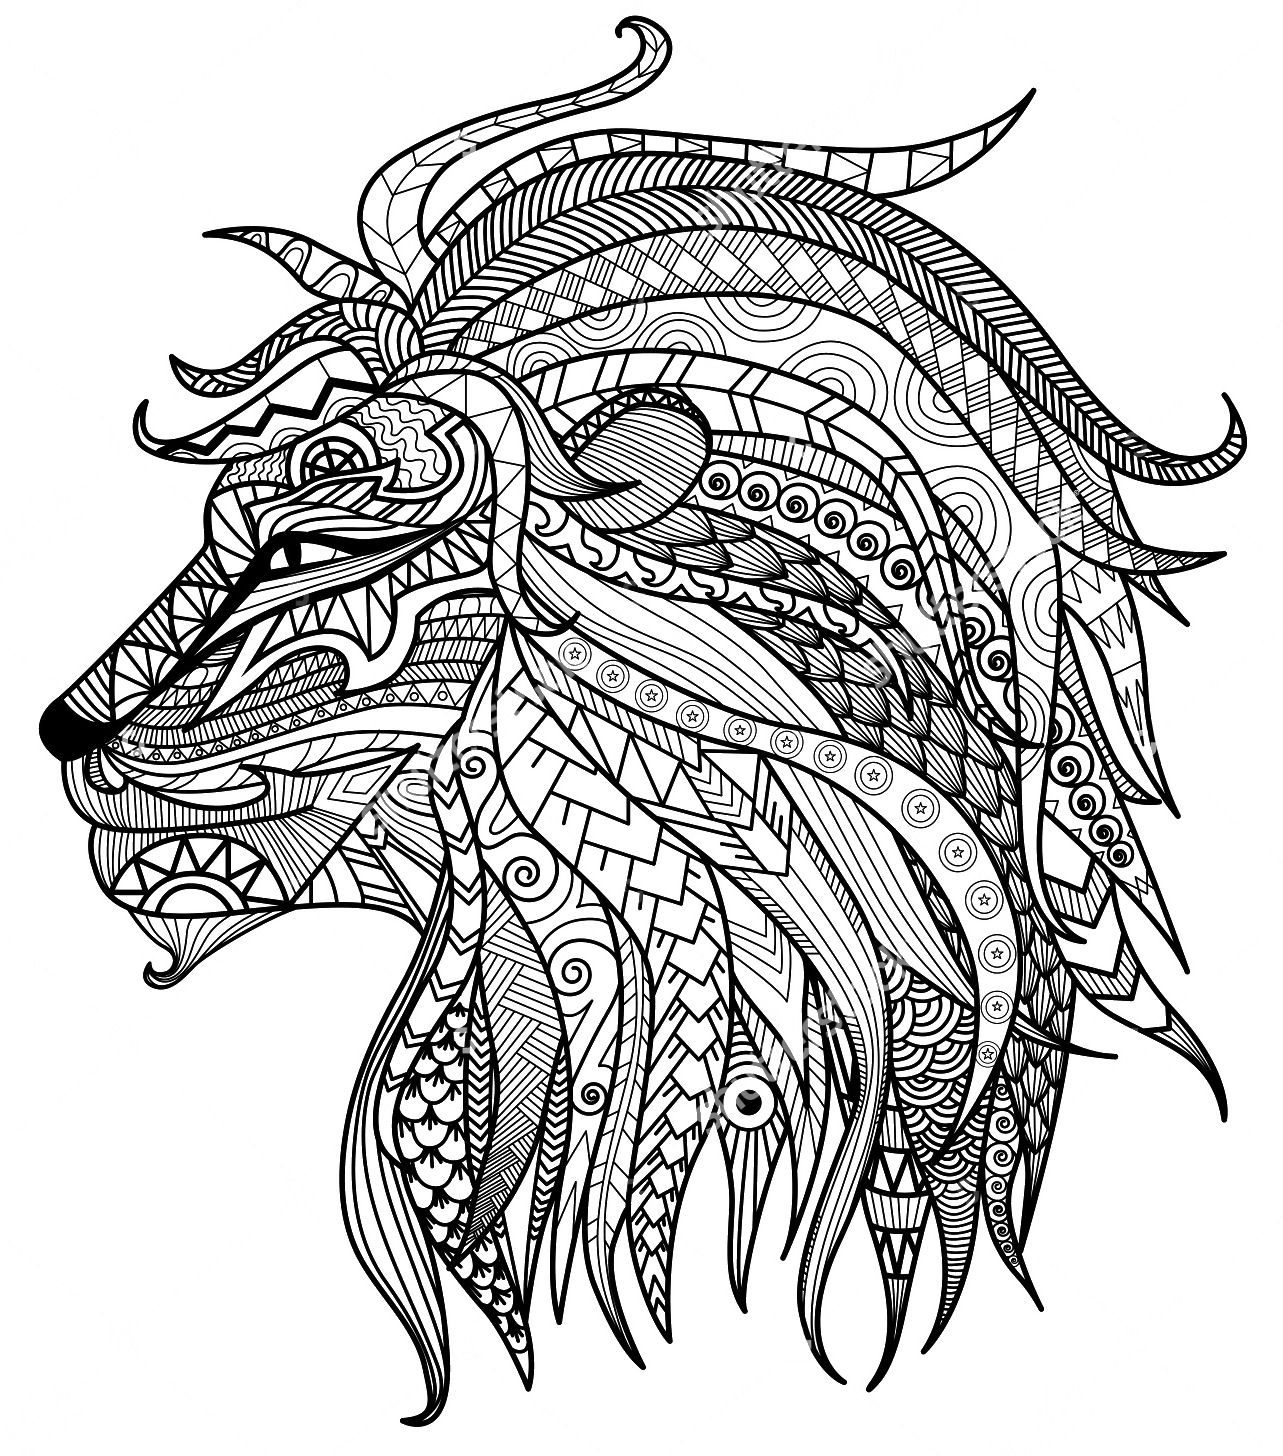 lion coloring pages for adults Adult Coloring Pages Lion Head | Adult Coloring Pages and  lion coloring pages for adults